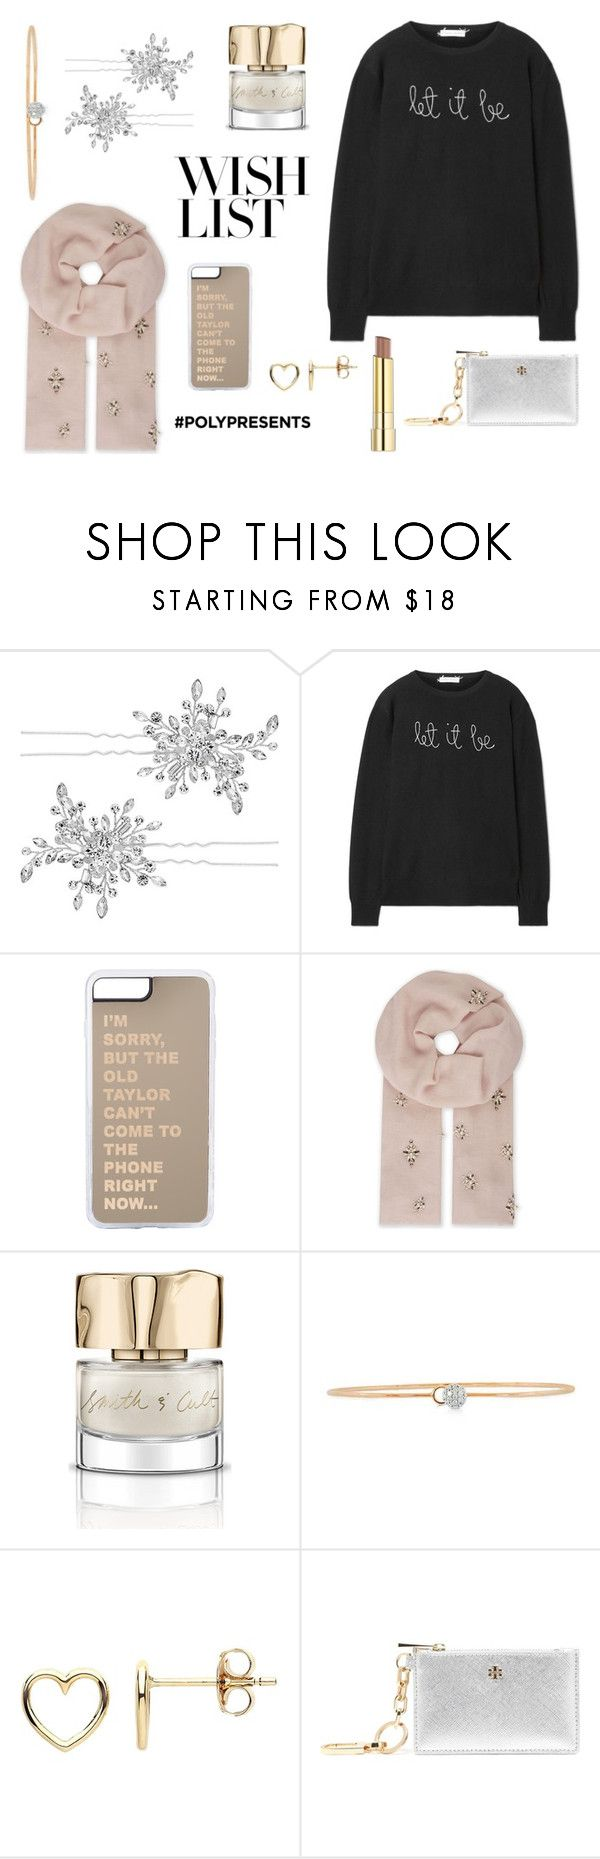 """""""#PolyPresents: Wish List"""" by picassogirl ❤ liked on Polyvore featuring Matthew Williamson, Lingua Franca, Janavi, Smith & Cult, Phillips House, Estella Bartlett, Tory Burch, Stila, contestentry and polyPresents"""